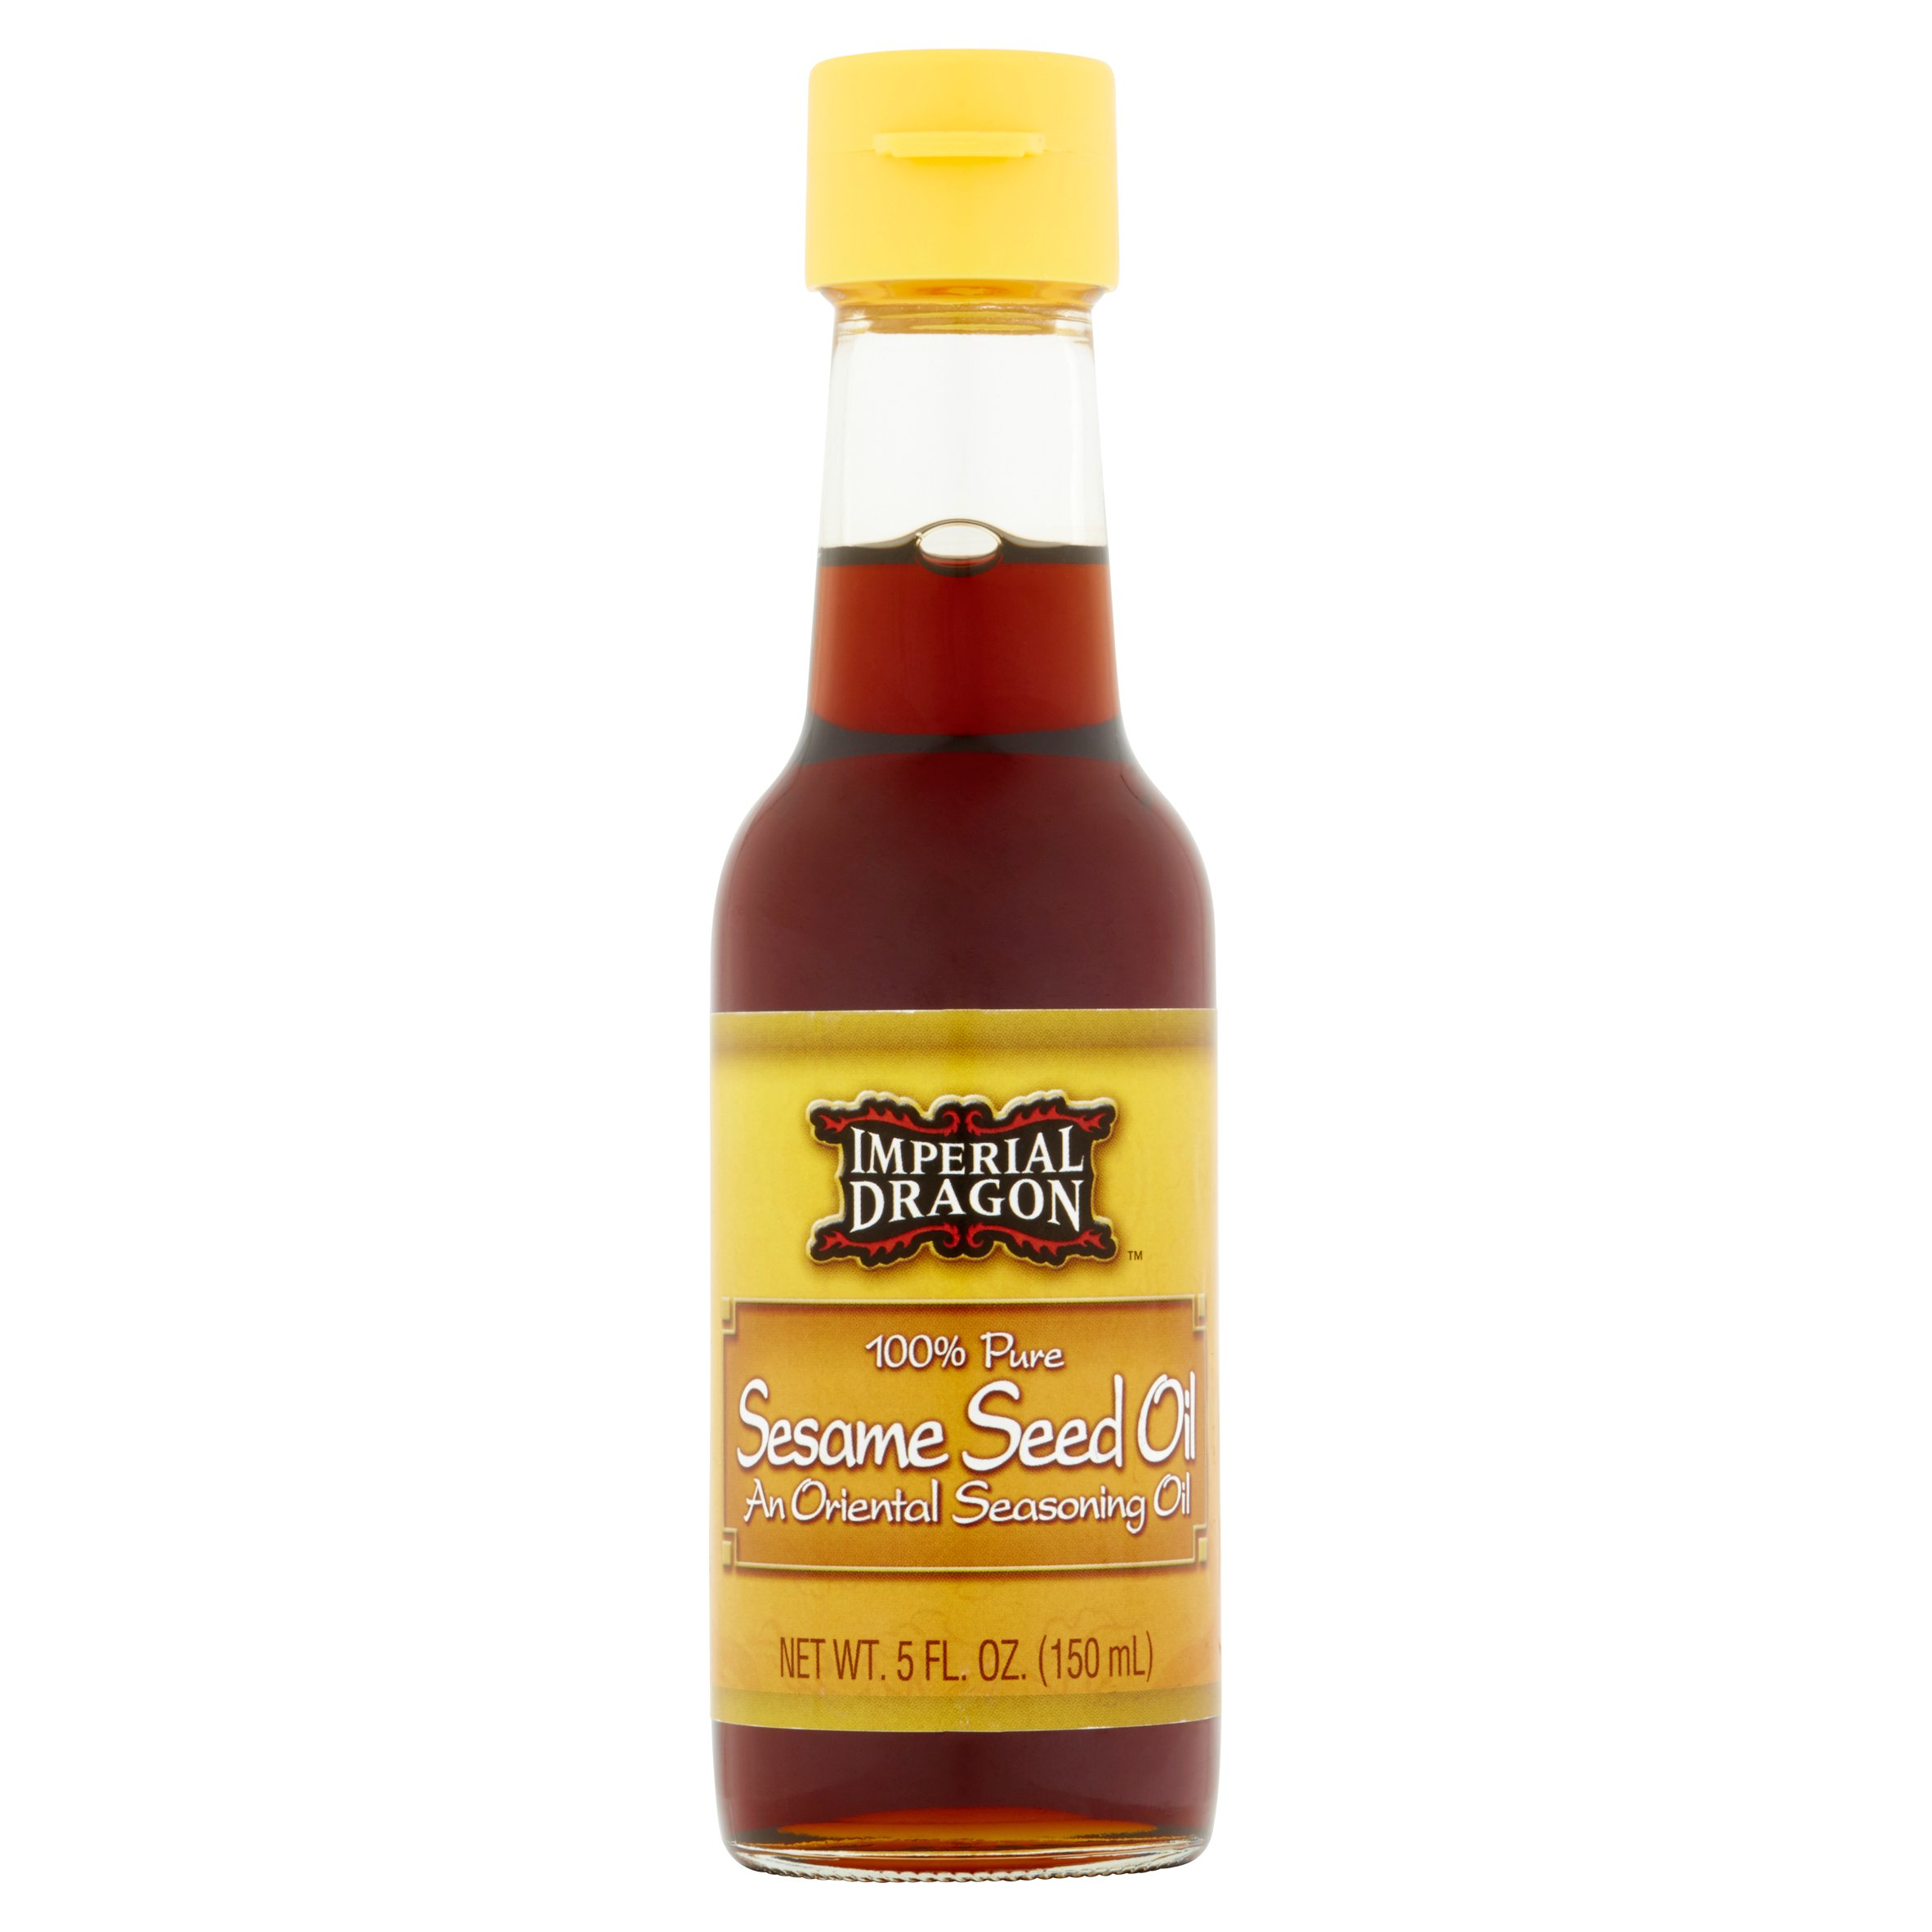 Imperial Dragon 100% Pure Sesame Seed Oil, 5 Fl Oz